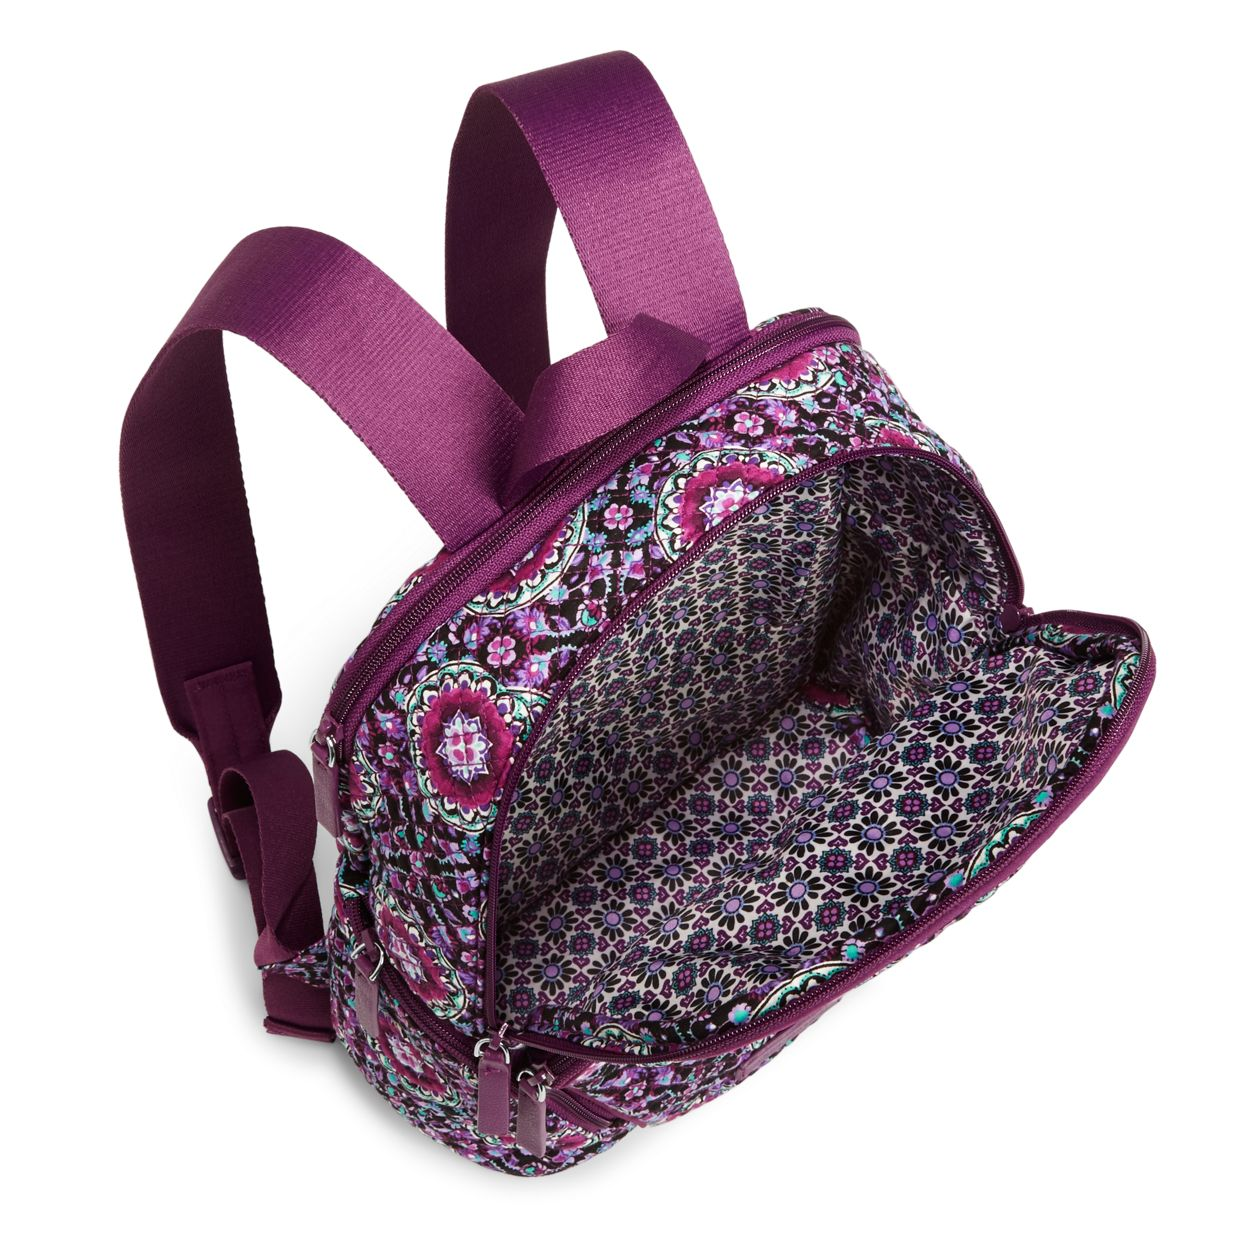 ... Image of Hadley Backpack in Lilac Medallion ... 001a2056d8c01